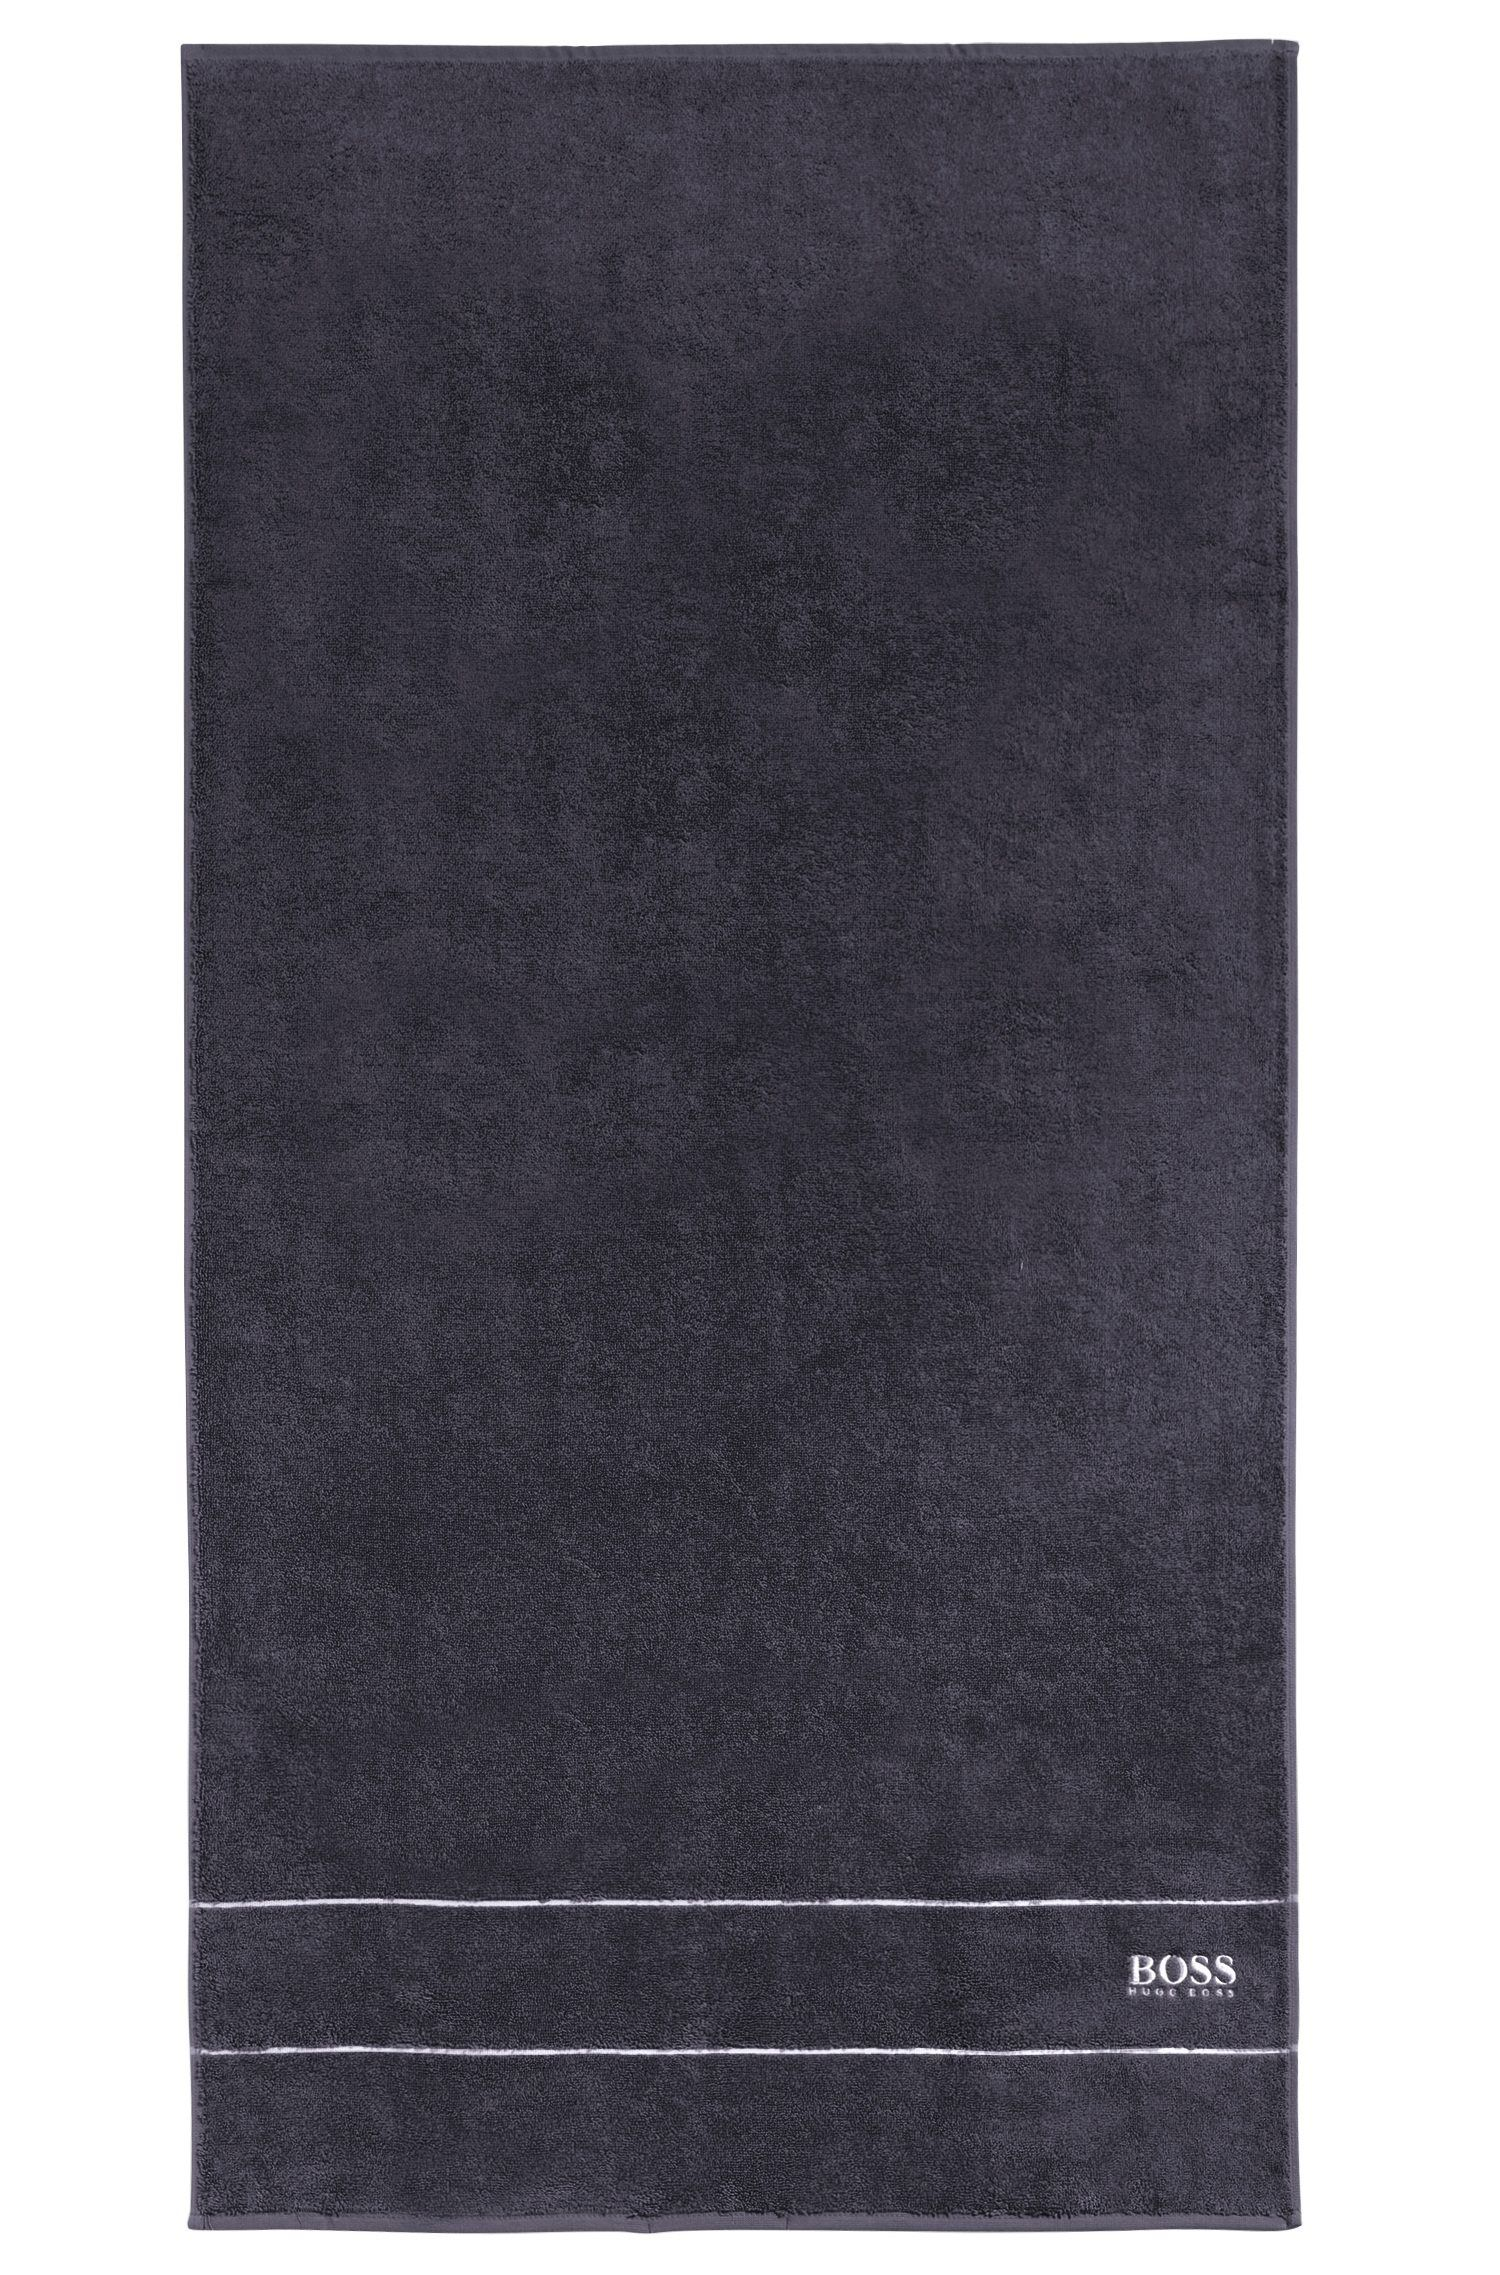 Finest Egyptian cotton bath towel with logo border, Anthracite